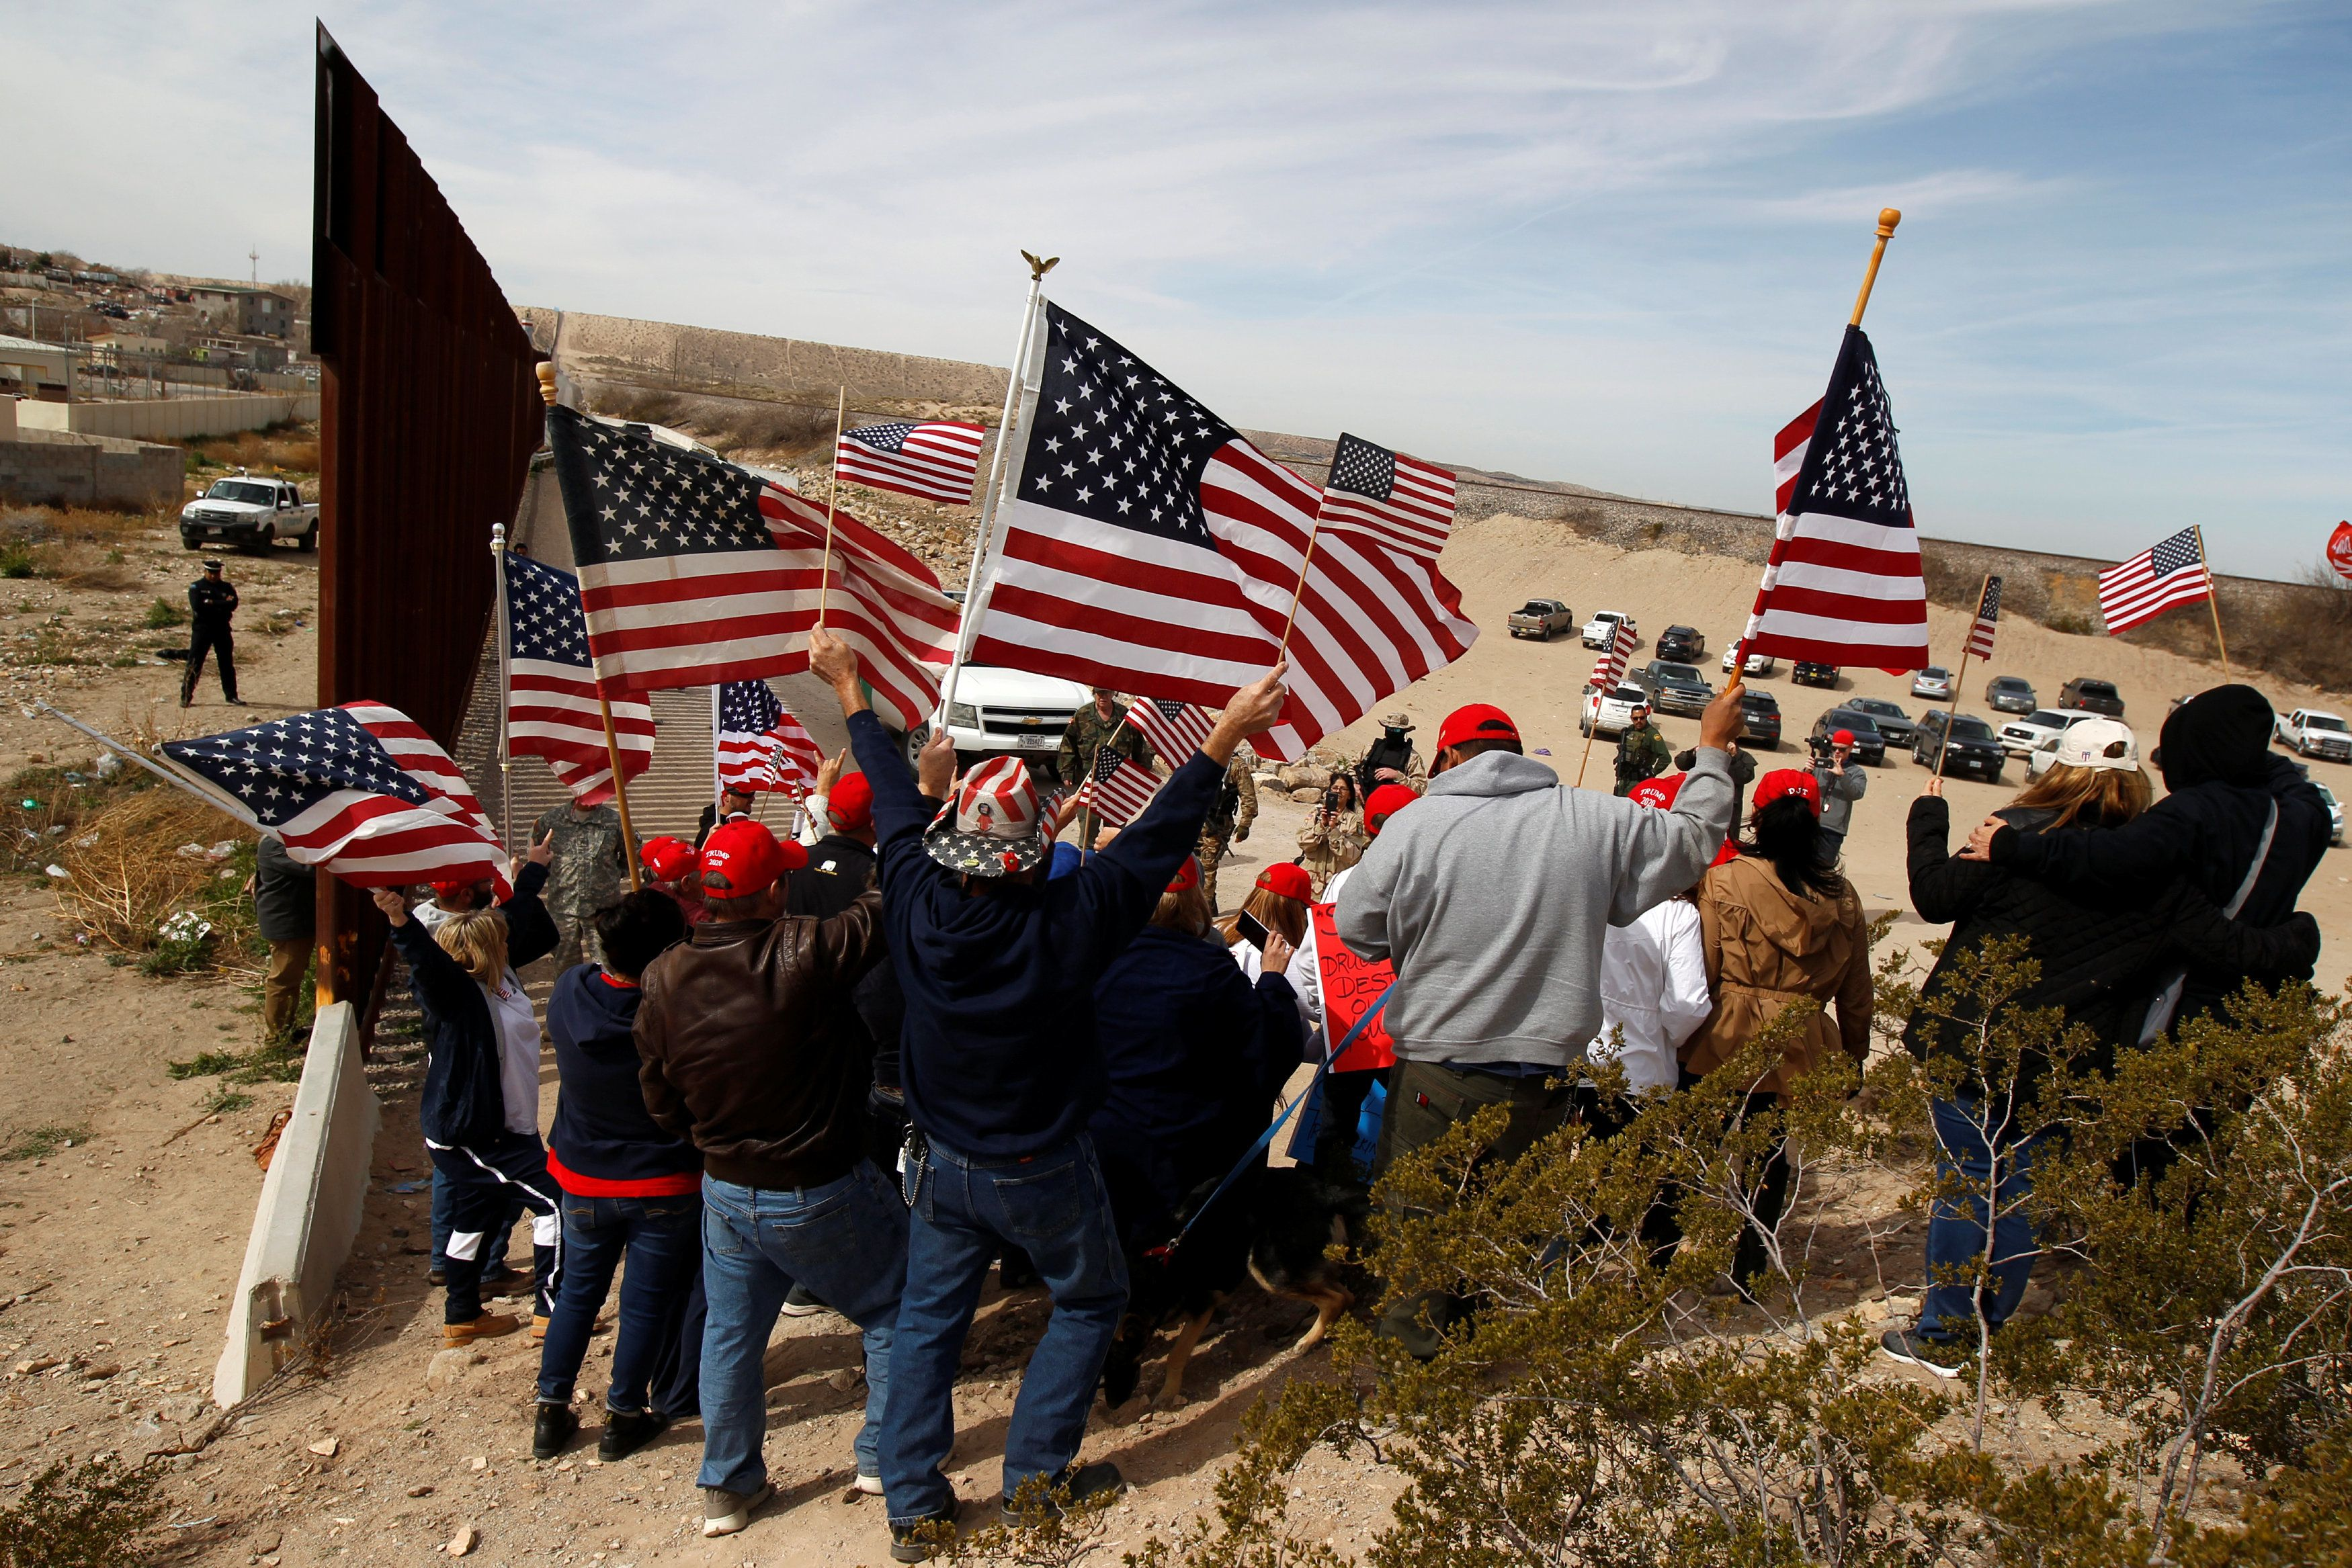 U.S demonstrators hold U.S flags at the open border to make a human wall in support of the construction of the new border wall between U.S and Mexico in Ciudad Juarez, Mexico February 9, 2019. REUTERS/Jose Luis Gonzalez